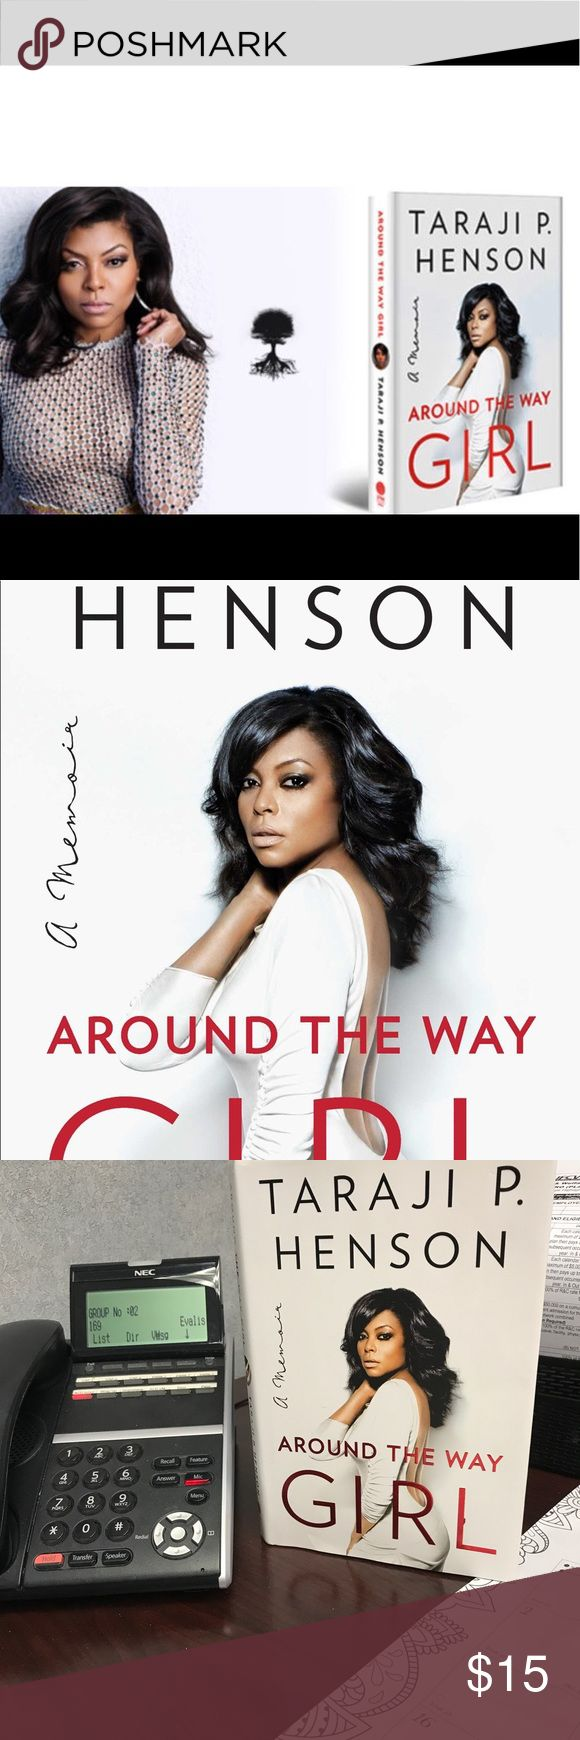 """Around the way Girl by the Queen Taraji Around the way Girl by Taraji P Henson!!! Was an amazing memoir of her life before she become famous. """"She is at heart, just a girl ub pursuit of her dreams.She never let anyone bring her down and made it for herself and her son. If at first you don't succeed then pick yourself up and try again!!! Other"""